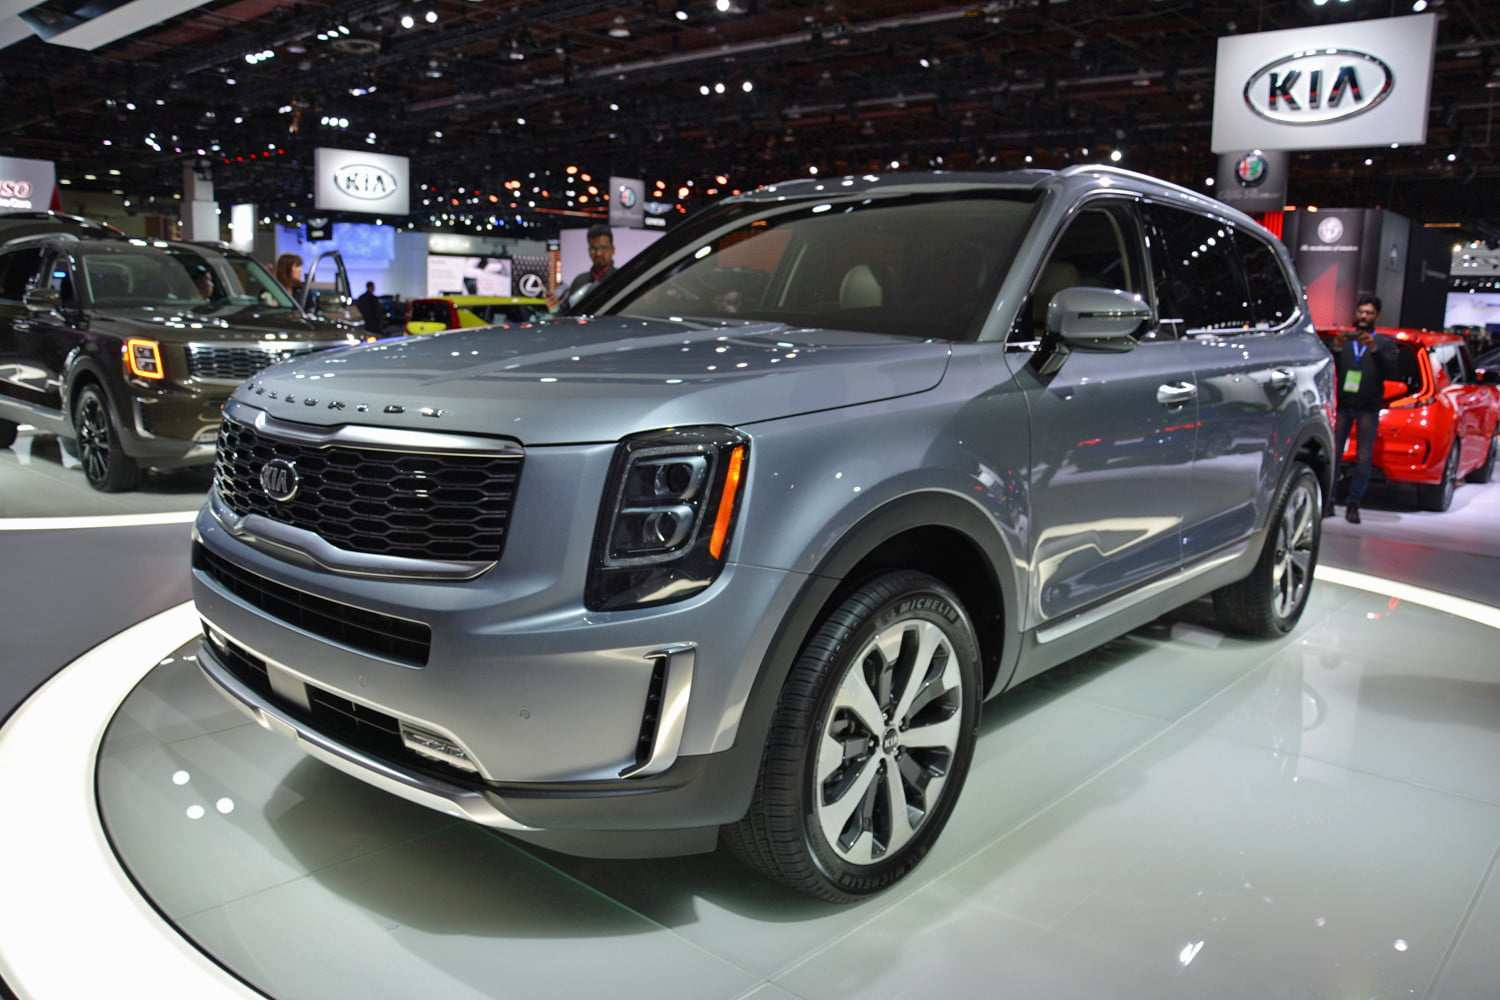 88 New Kia Large Suv 2020 Rumors